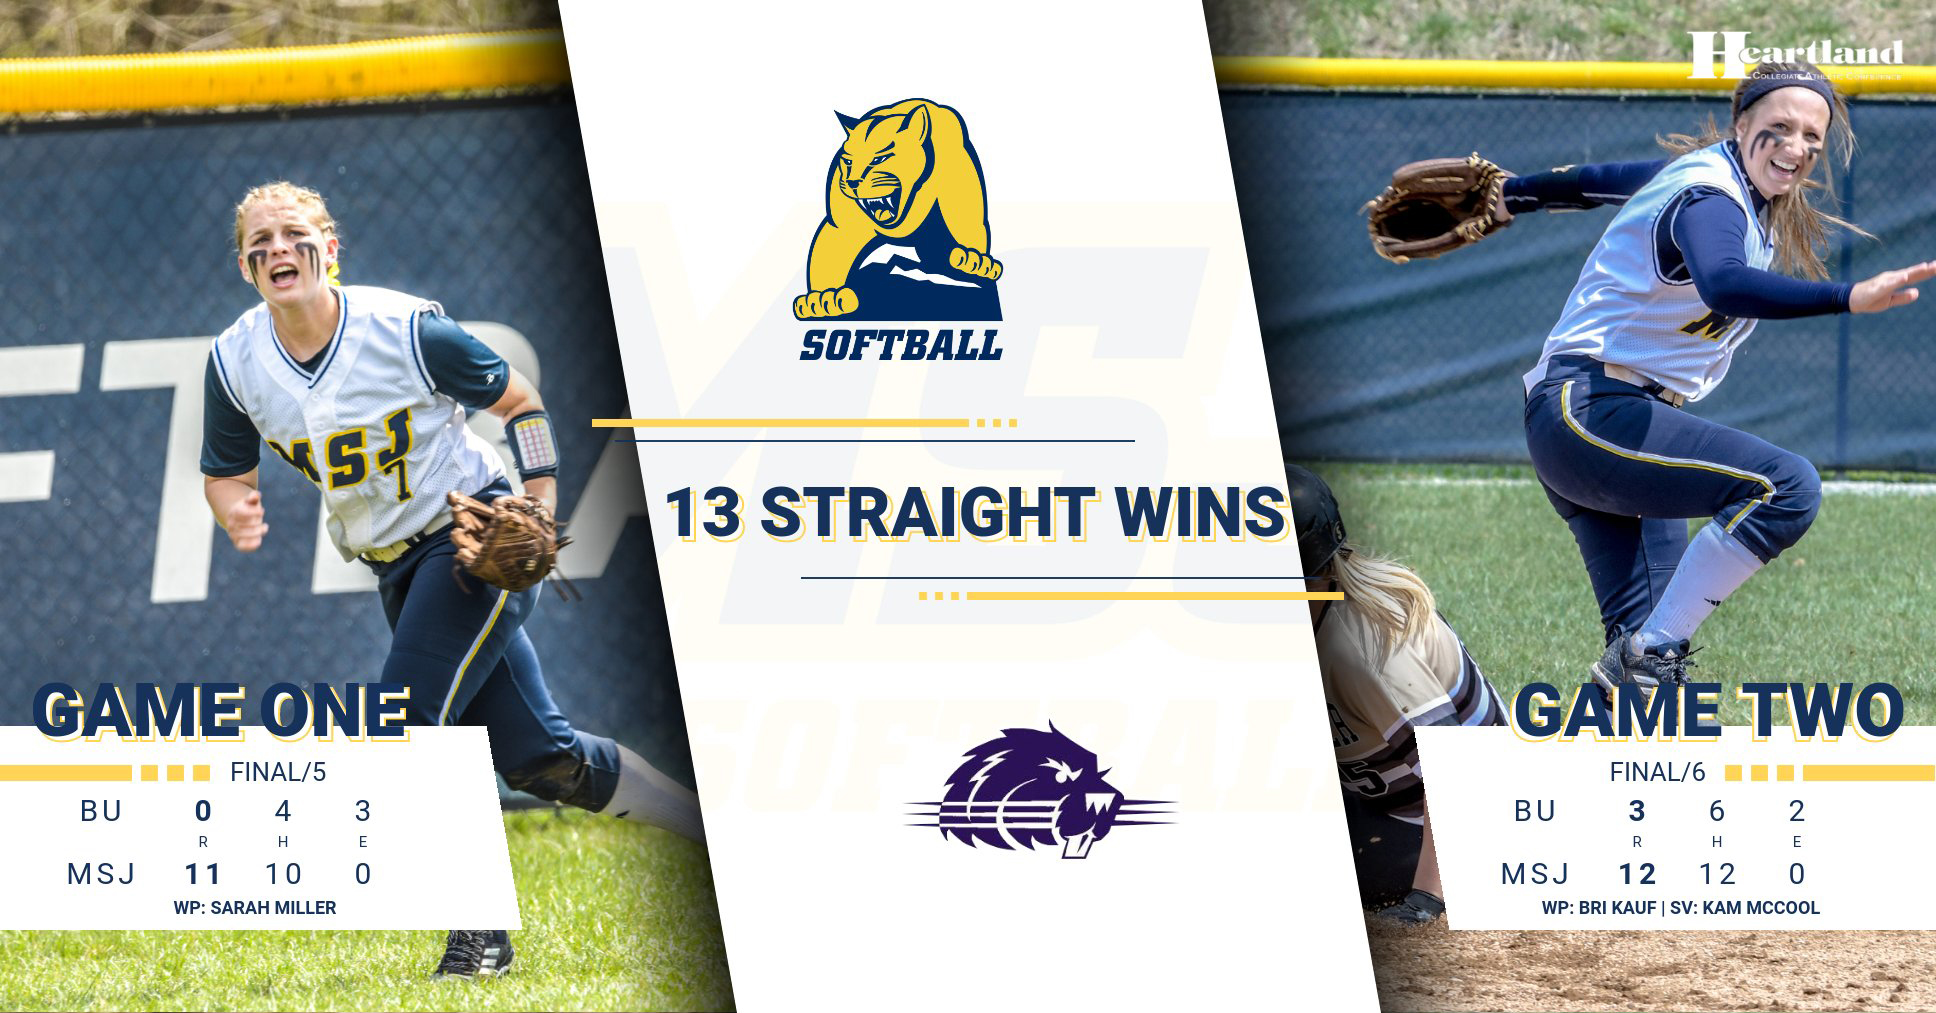 Mount St. Joseph softball sweeps Bluffton on the road: HCAC win streak now stands at 13